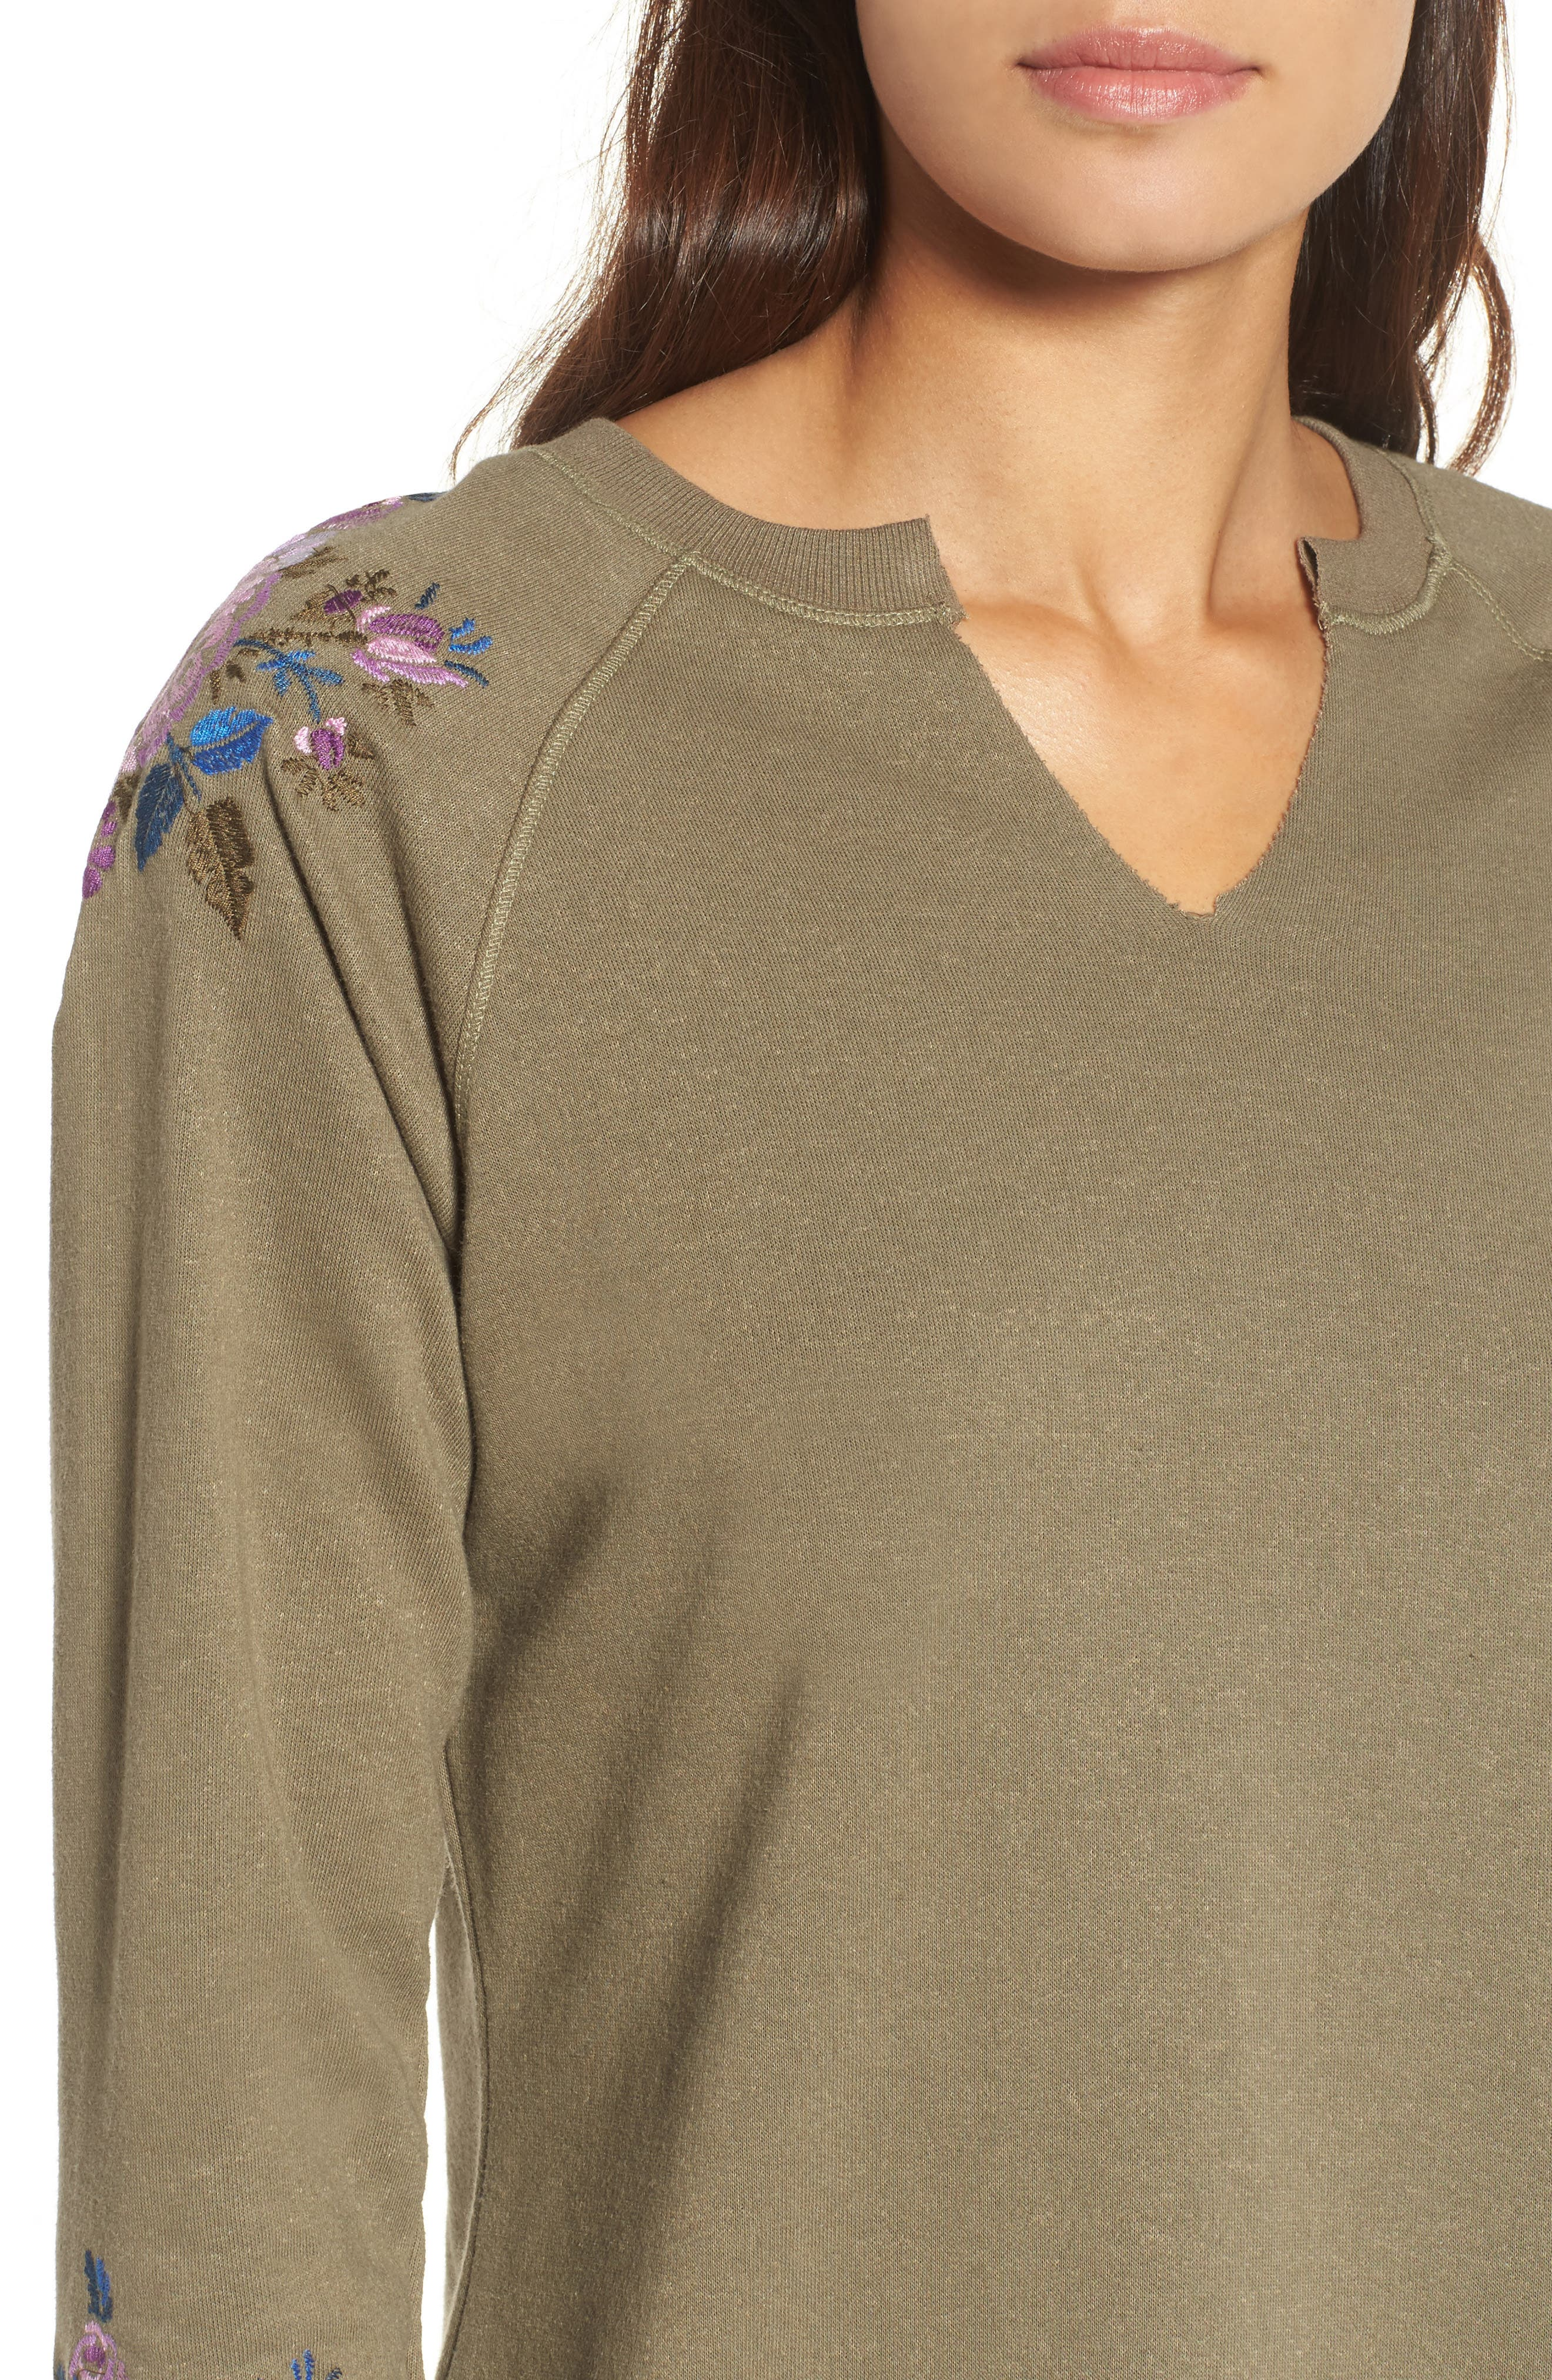 Embroidered Sweater,                             Alternate thumbnail 4, color,                             345